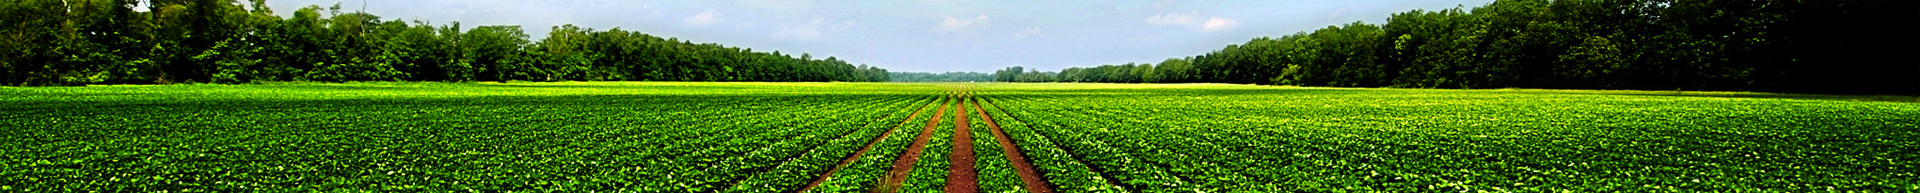 agricula_banner